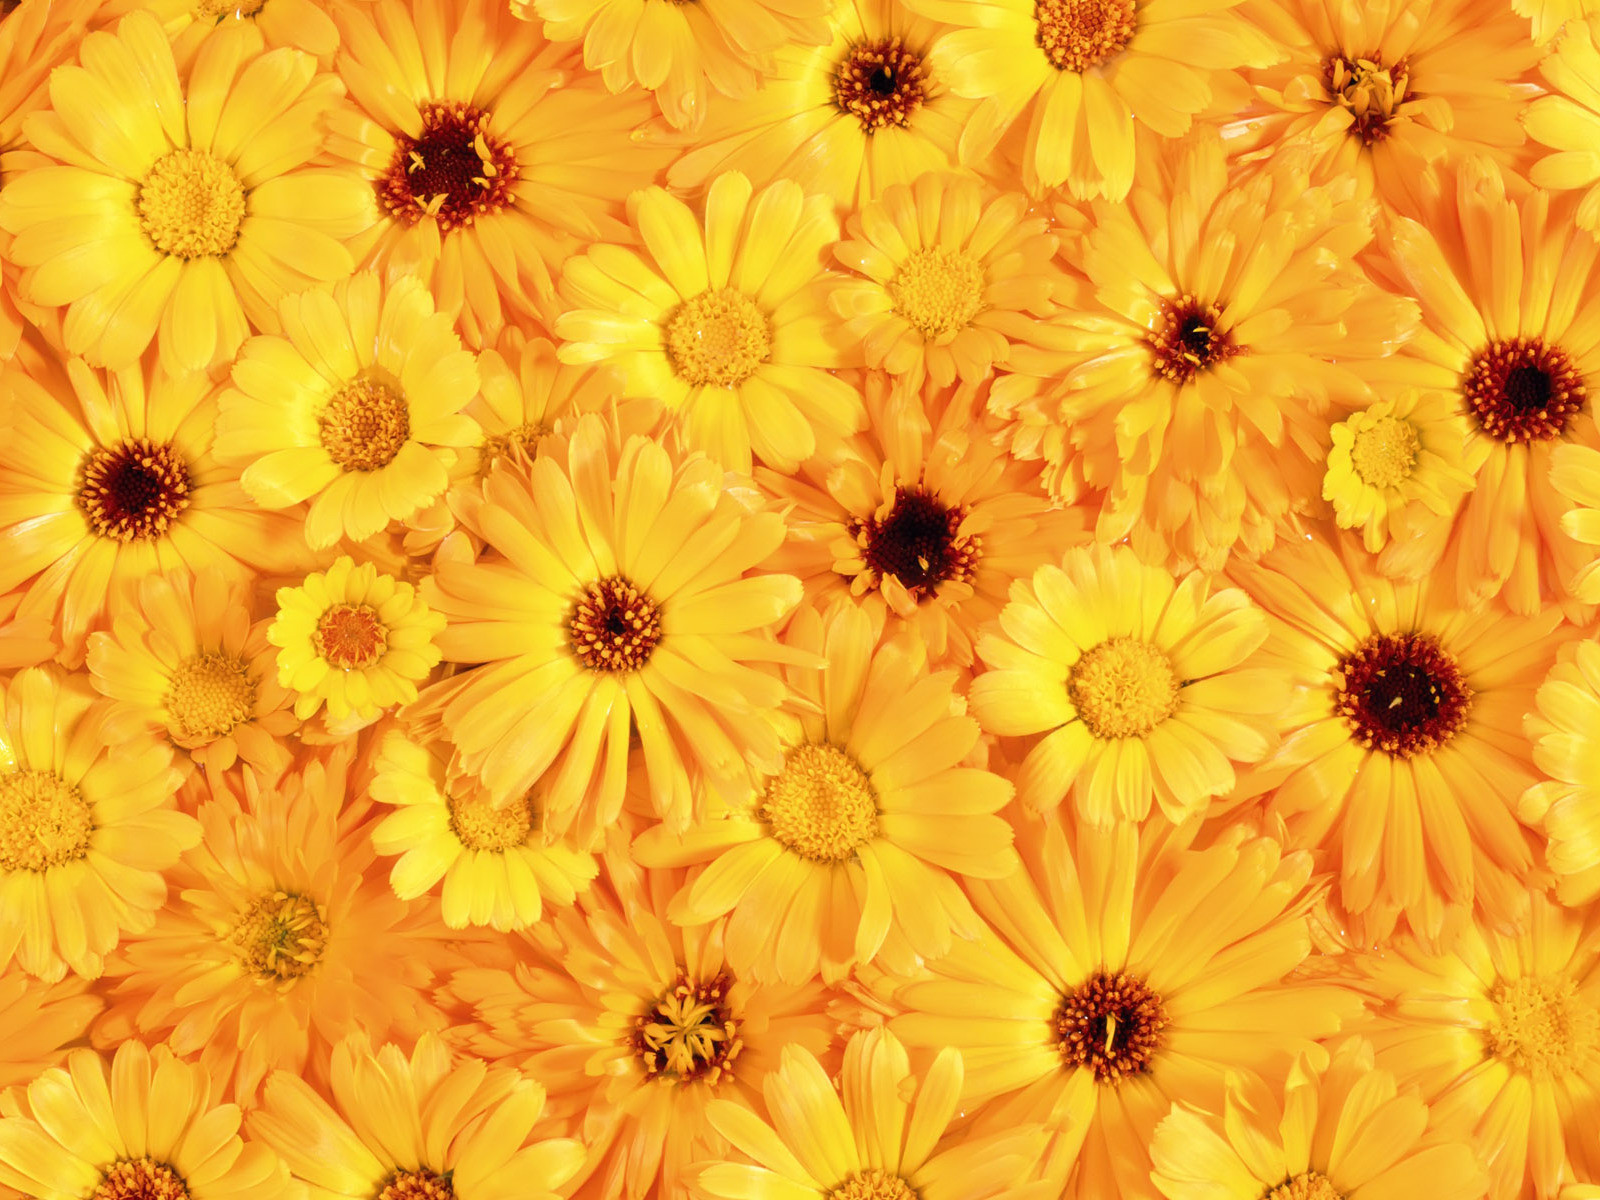 Yellow flowers texture flowers flower background flower texture mightylinksfo